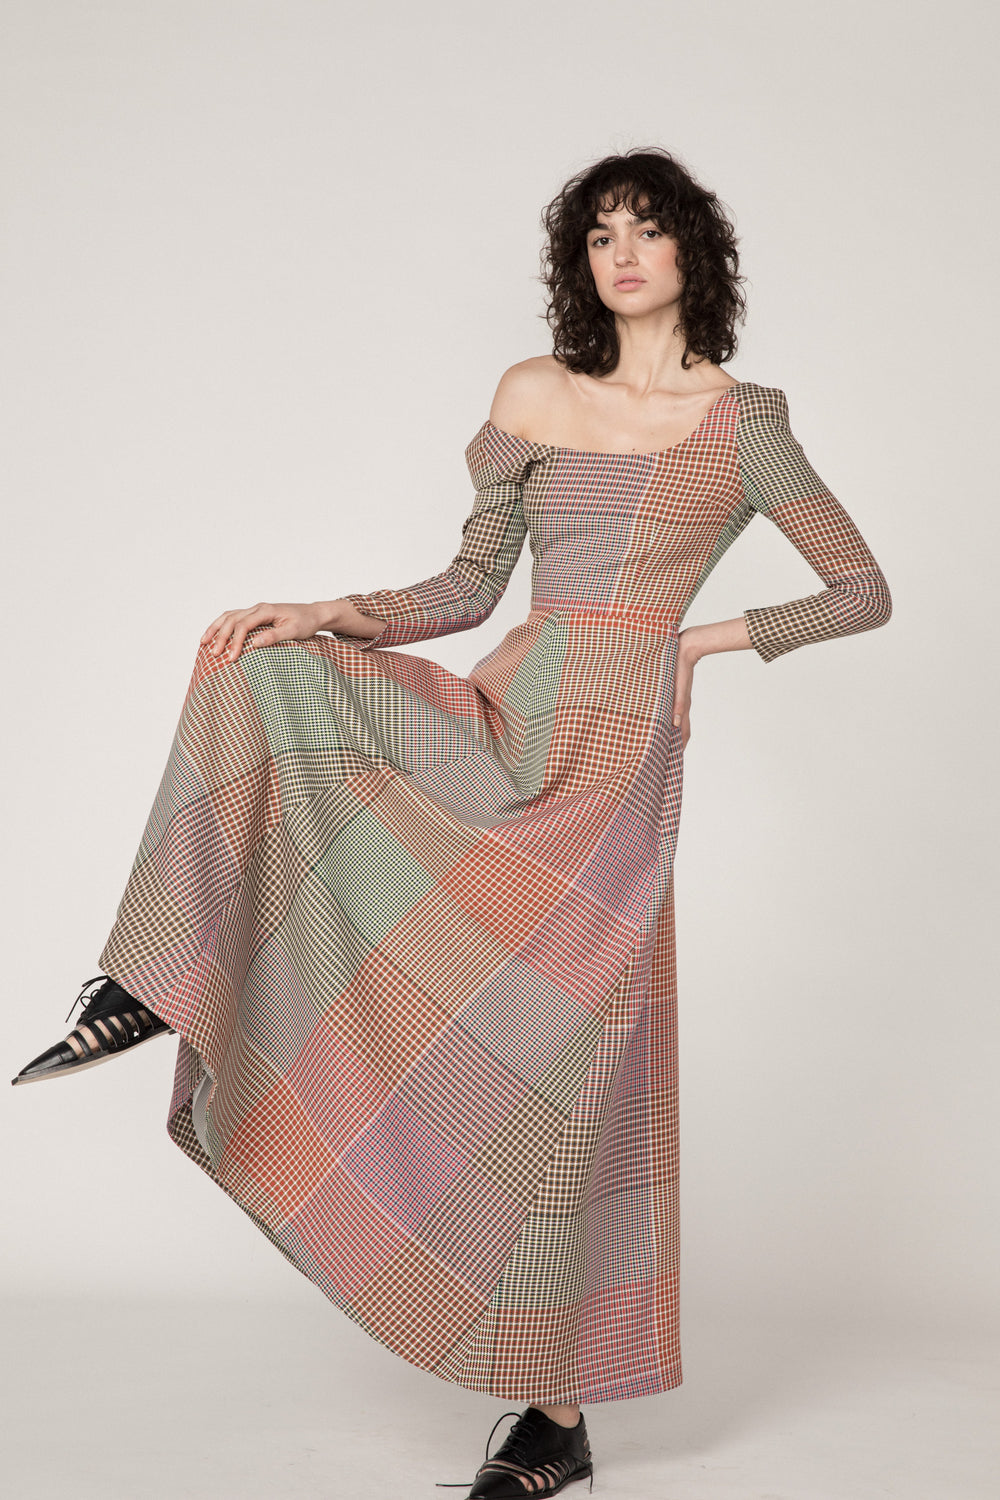 Rosie Assoulin Pre-Fall 2019 Off Ya Shoulder Dress. Long sleeve A-line dress. Slight shoulder pads. Customizable neckline. Zipper in back. Multicolored plaid. 100% Polyester. Sizes 0 - 12.